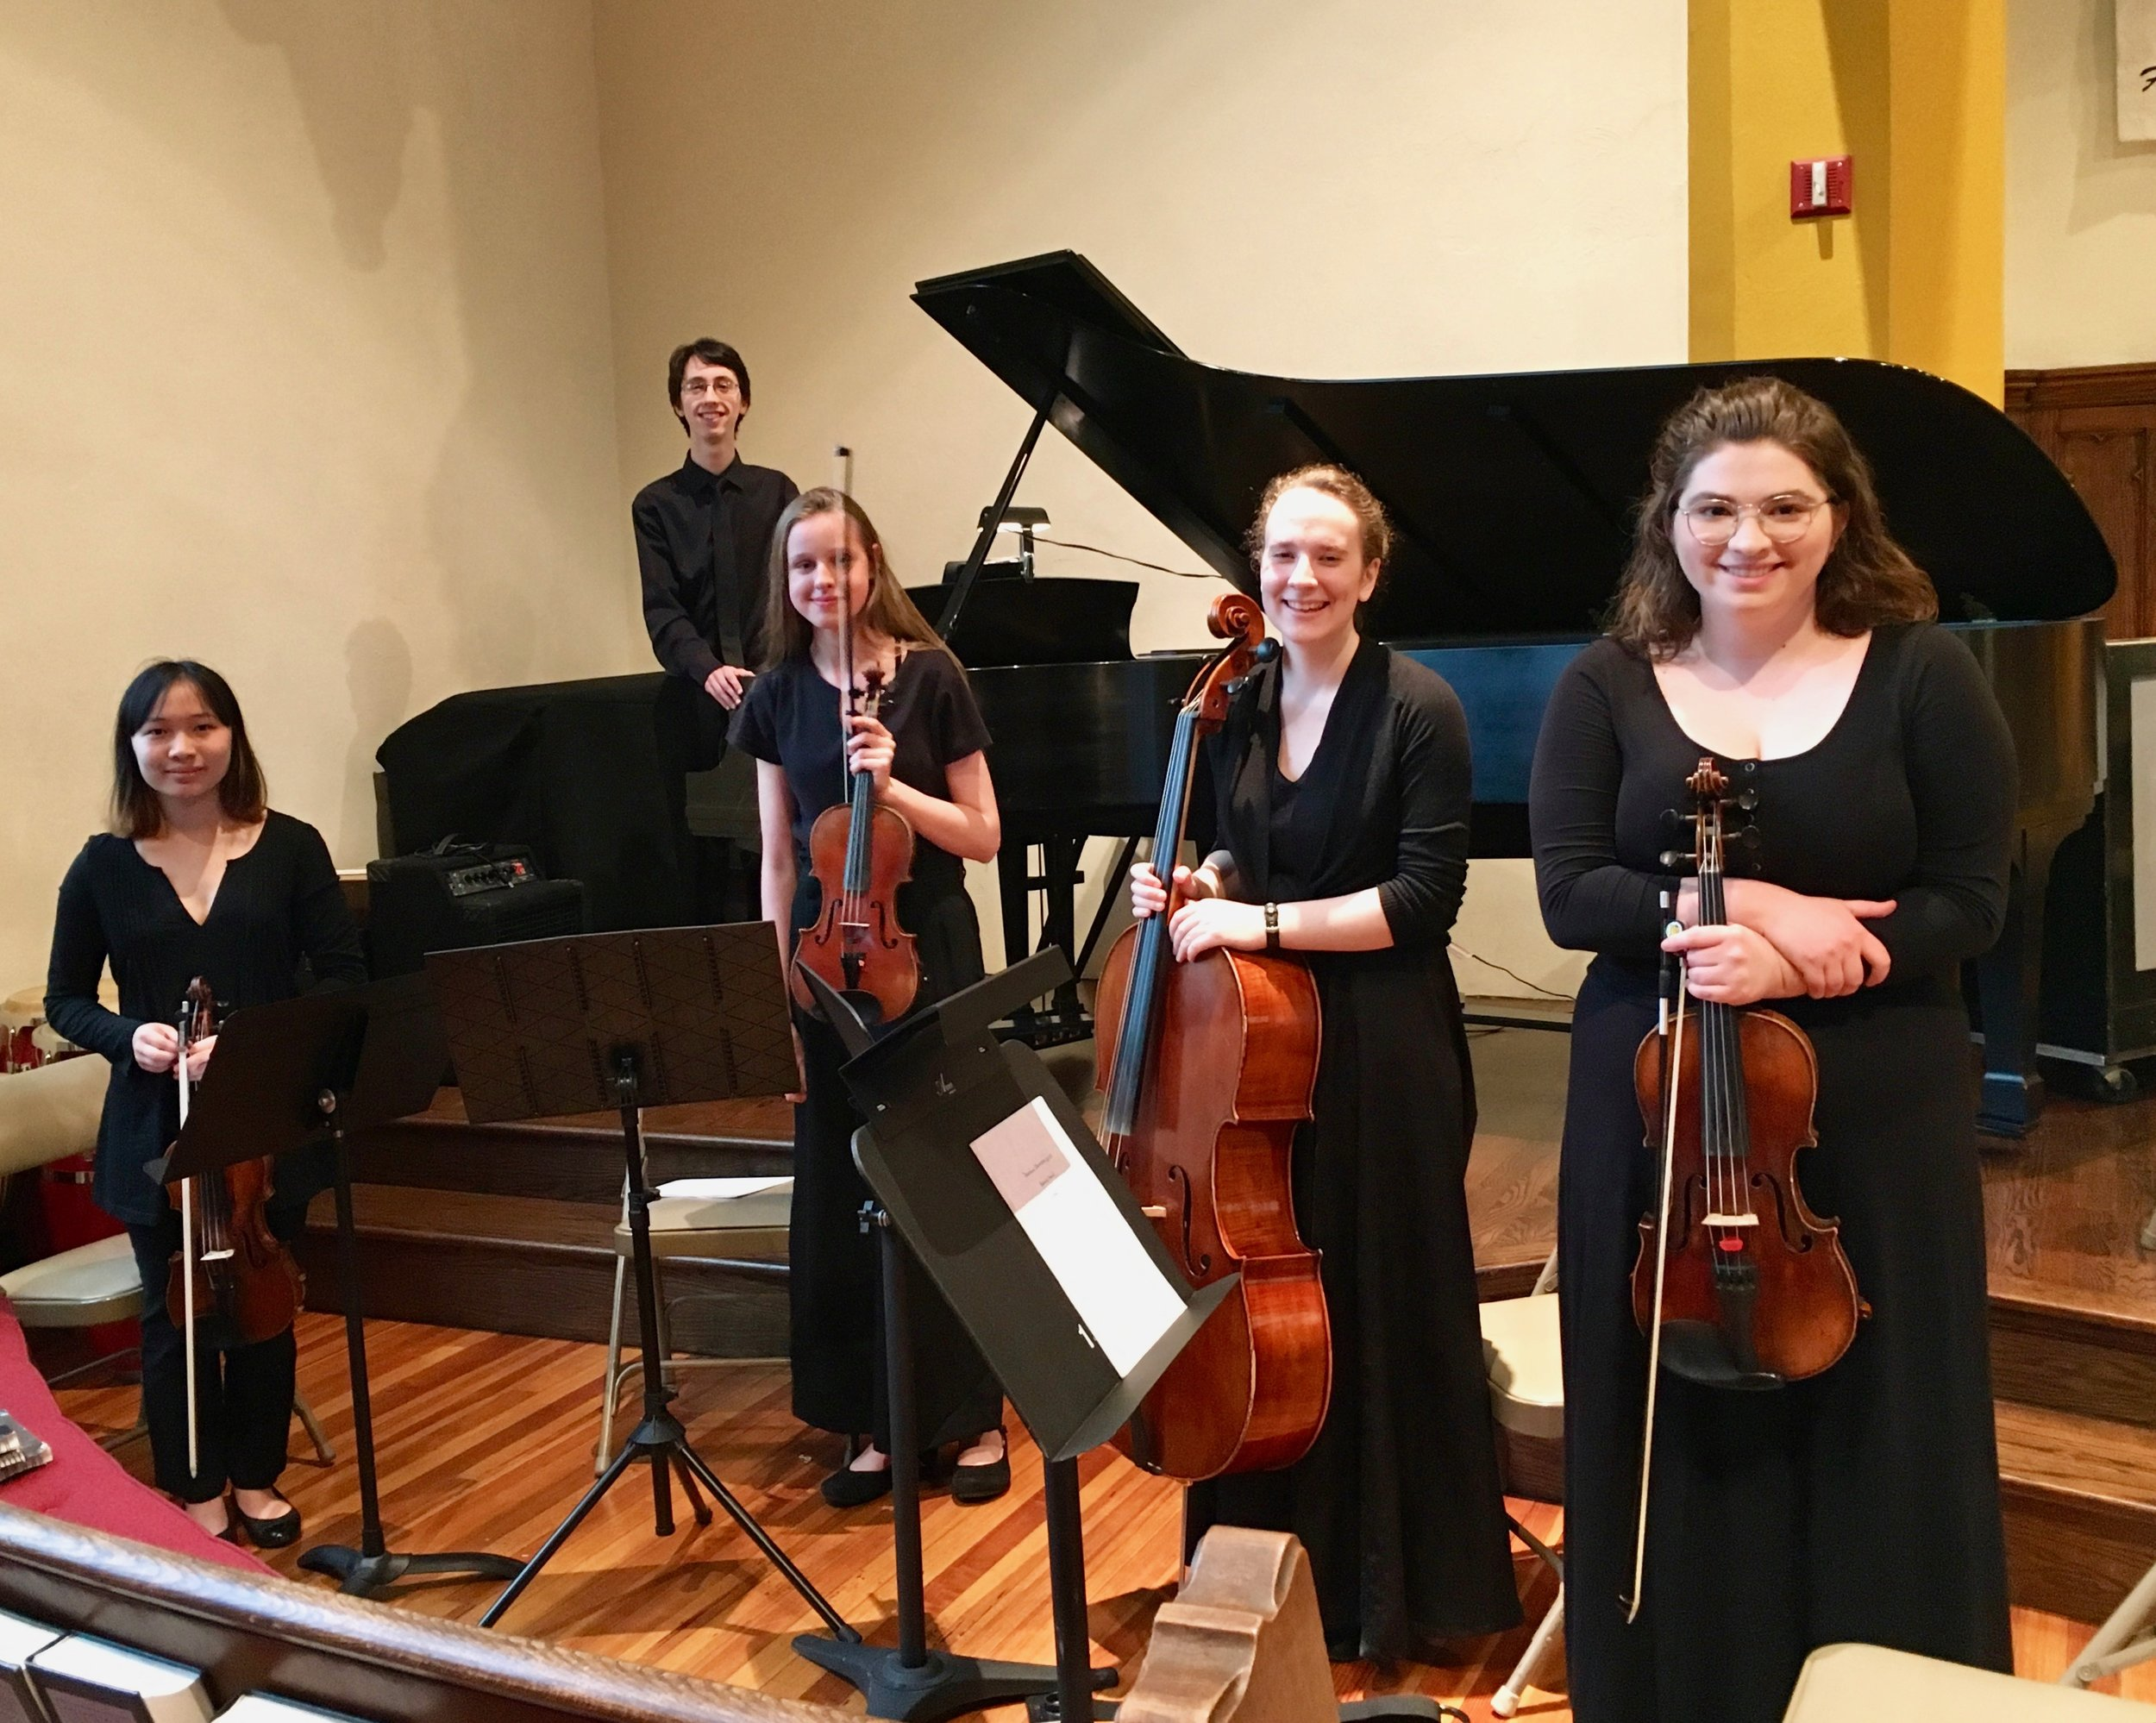 Chamber Orchestra of Pittsburgh - April 12, 2019The Finestra Quintet - Mei, Maeve, Mirra, Nora, and Rowan - performed pre-concert for the Chamber Orchestra of Pittsburgh at First Unitarian Church in Shadyside.